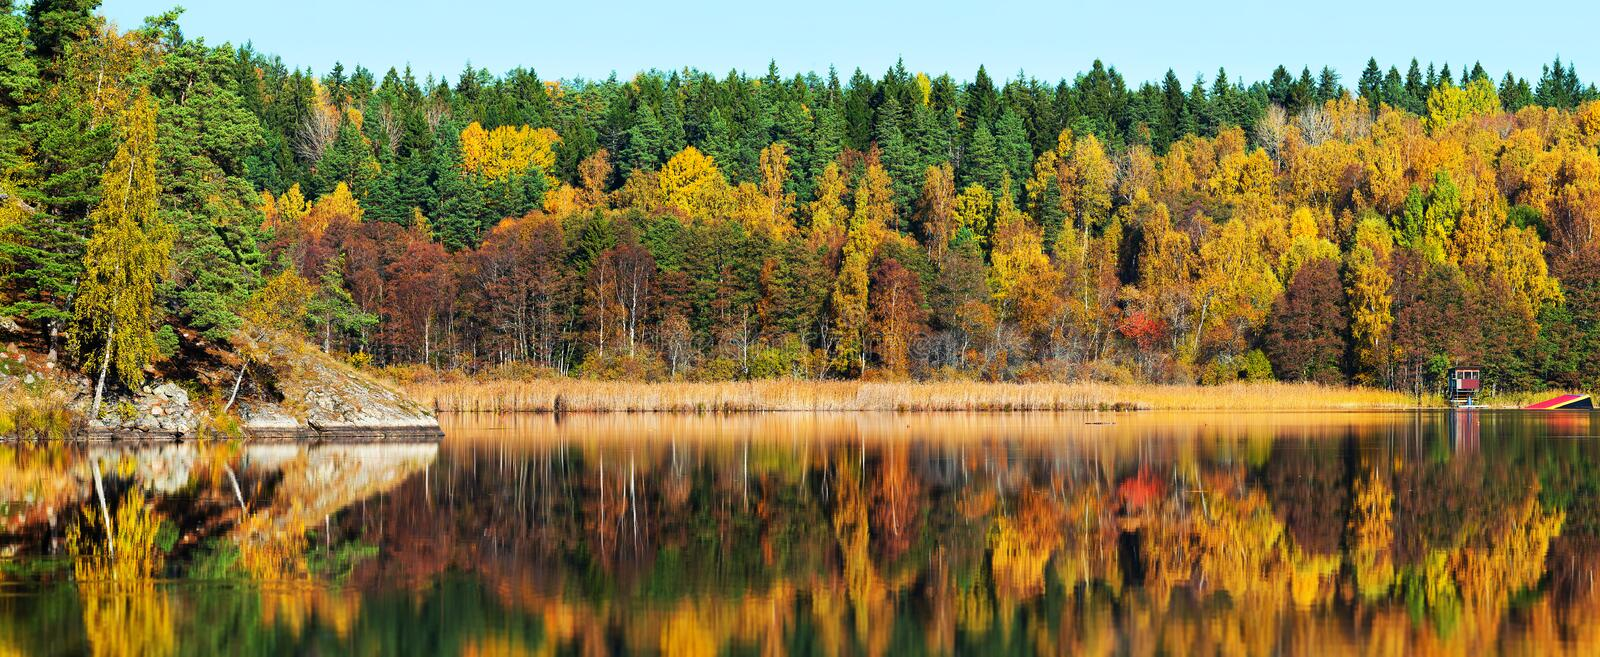 Autumn forest with reflections in a lake royalty free stock photo